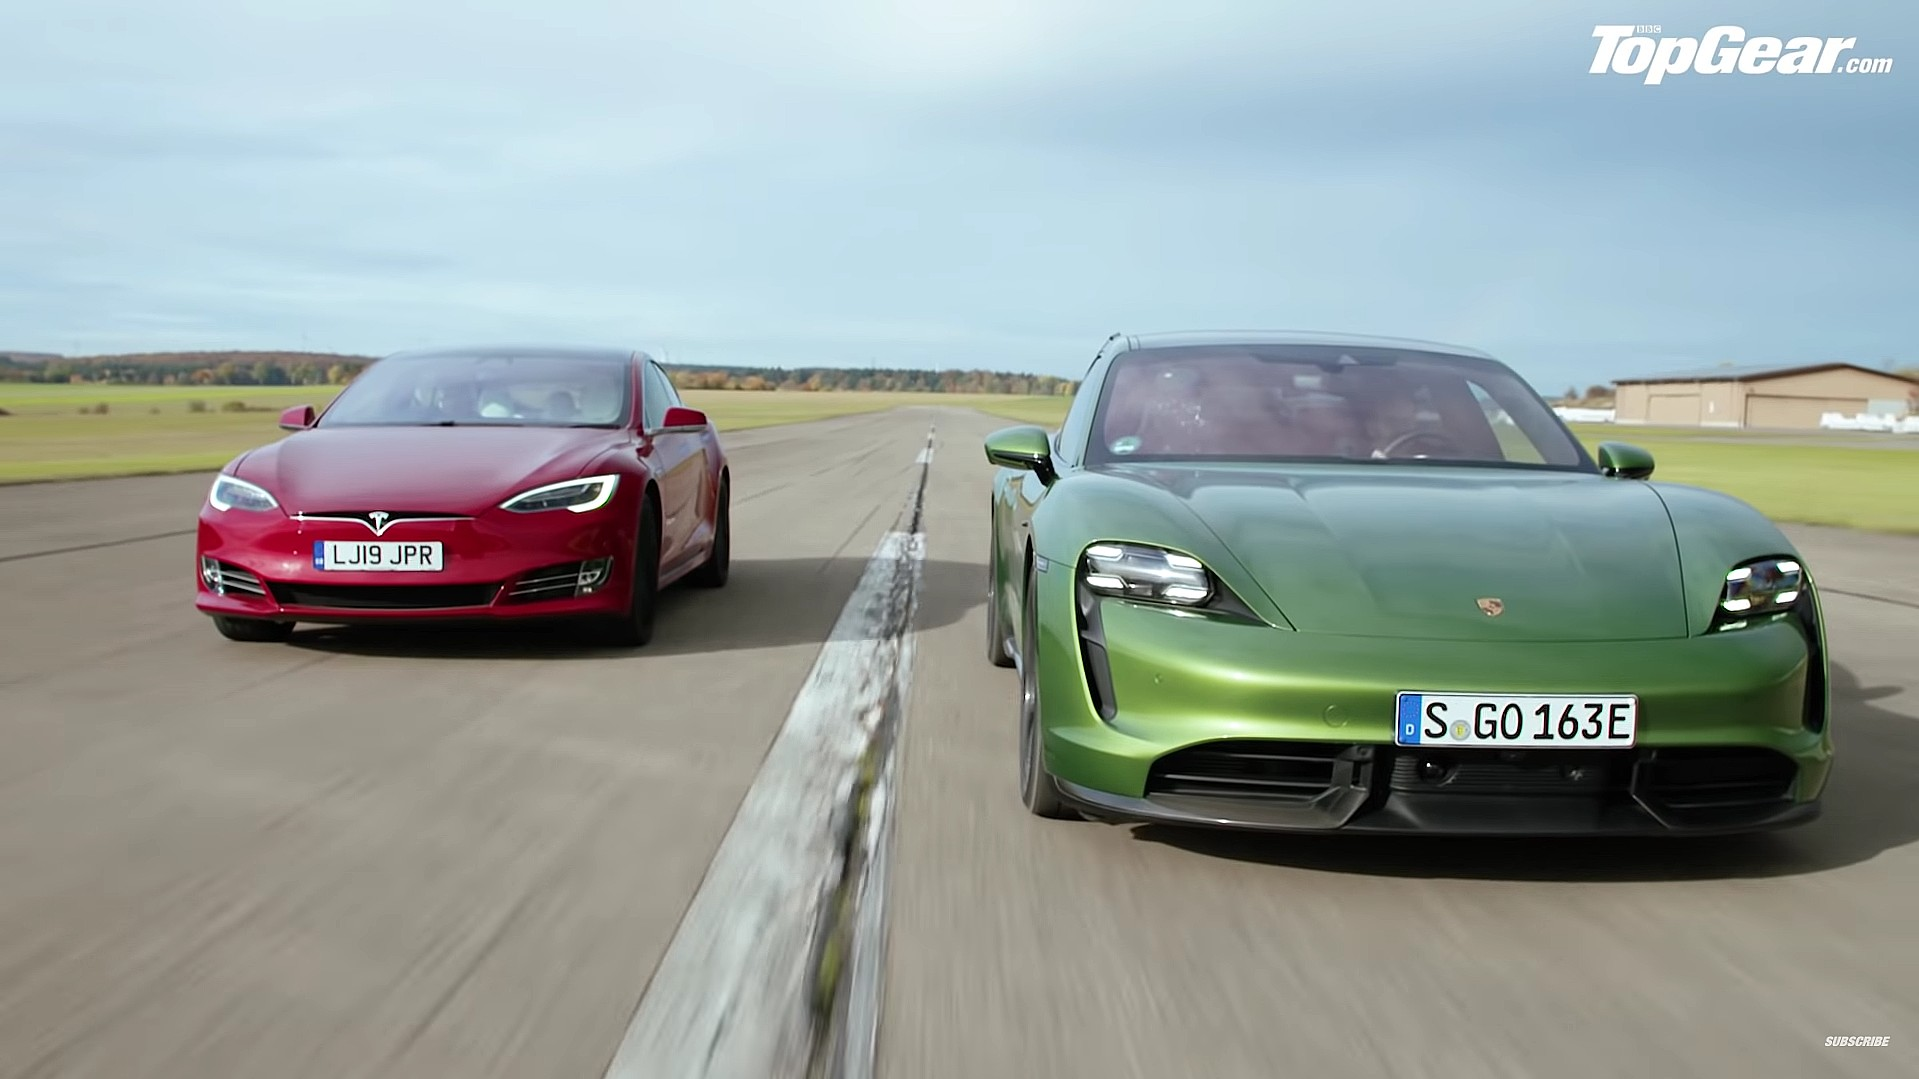 Top Gear Doubles Down On Tesla Vs Porsche Race Claims Model S Actual Results Are Worse